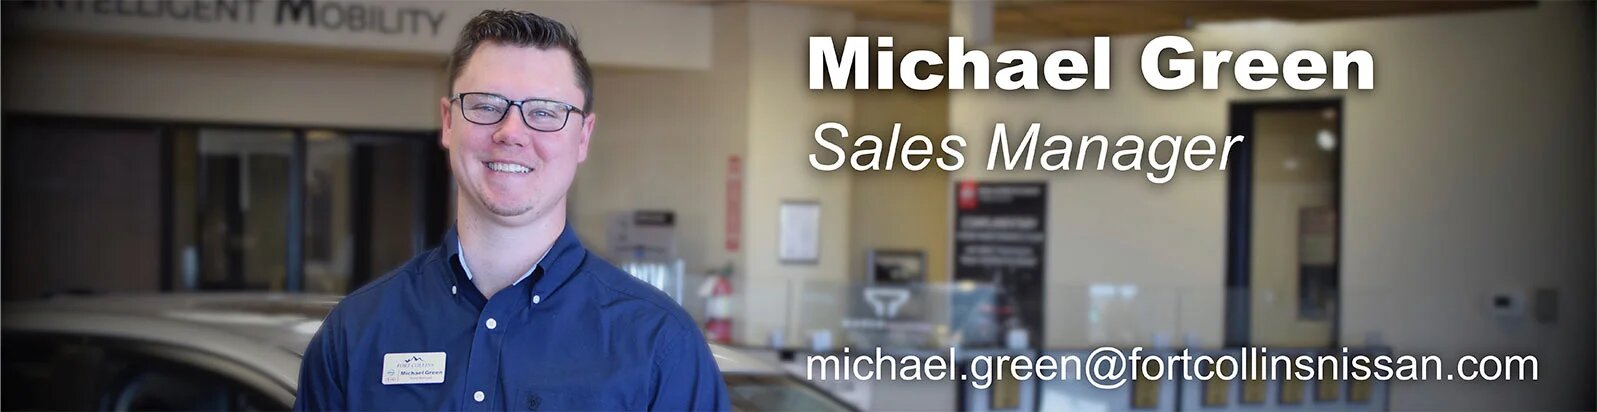 Sales Manager Michael Green